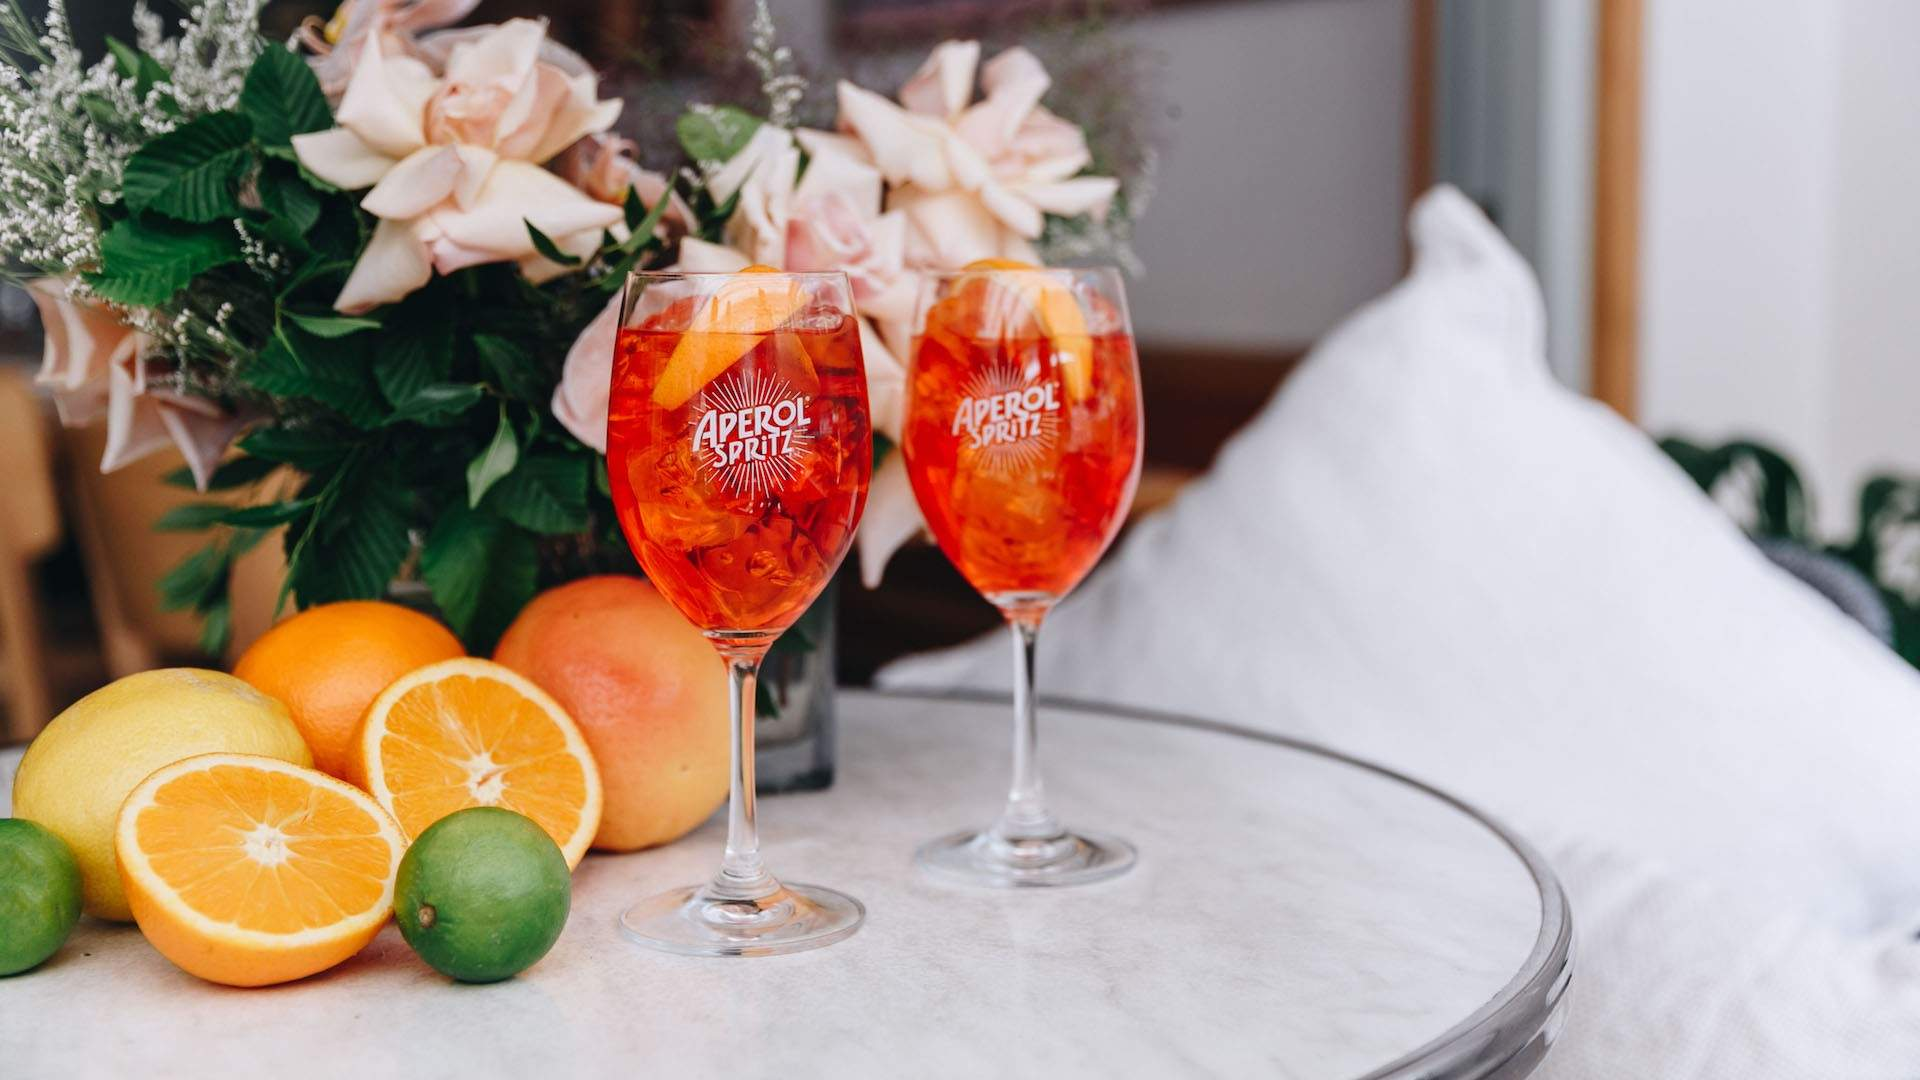 Aperol Has Launched a Series of Free Cooking and Art Classes to Help Up Your Aperitivo Game